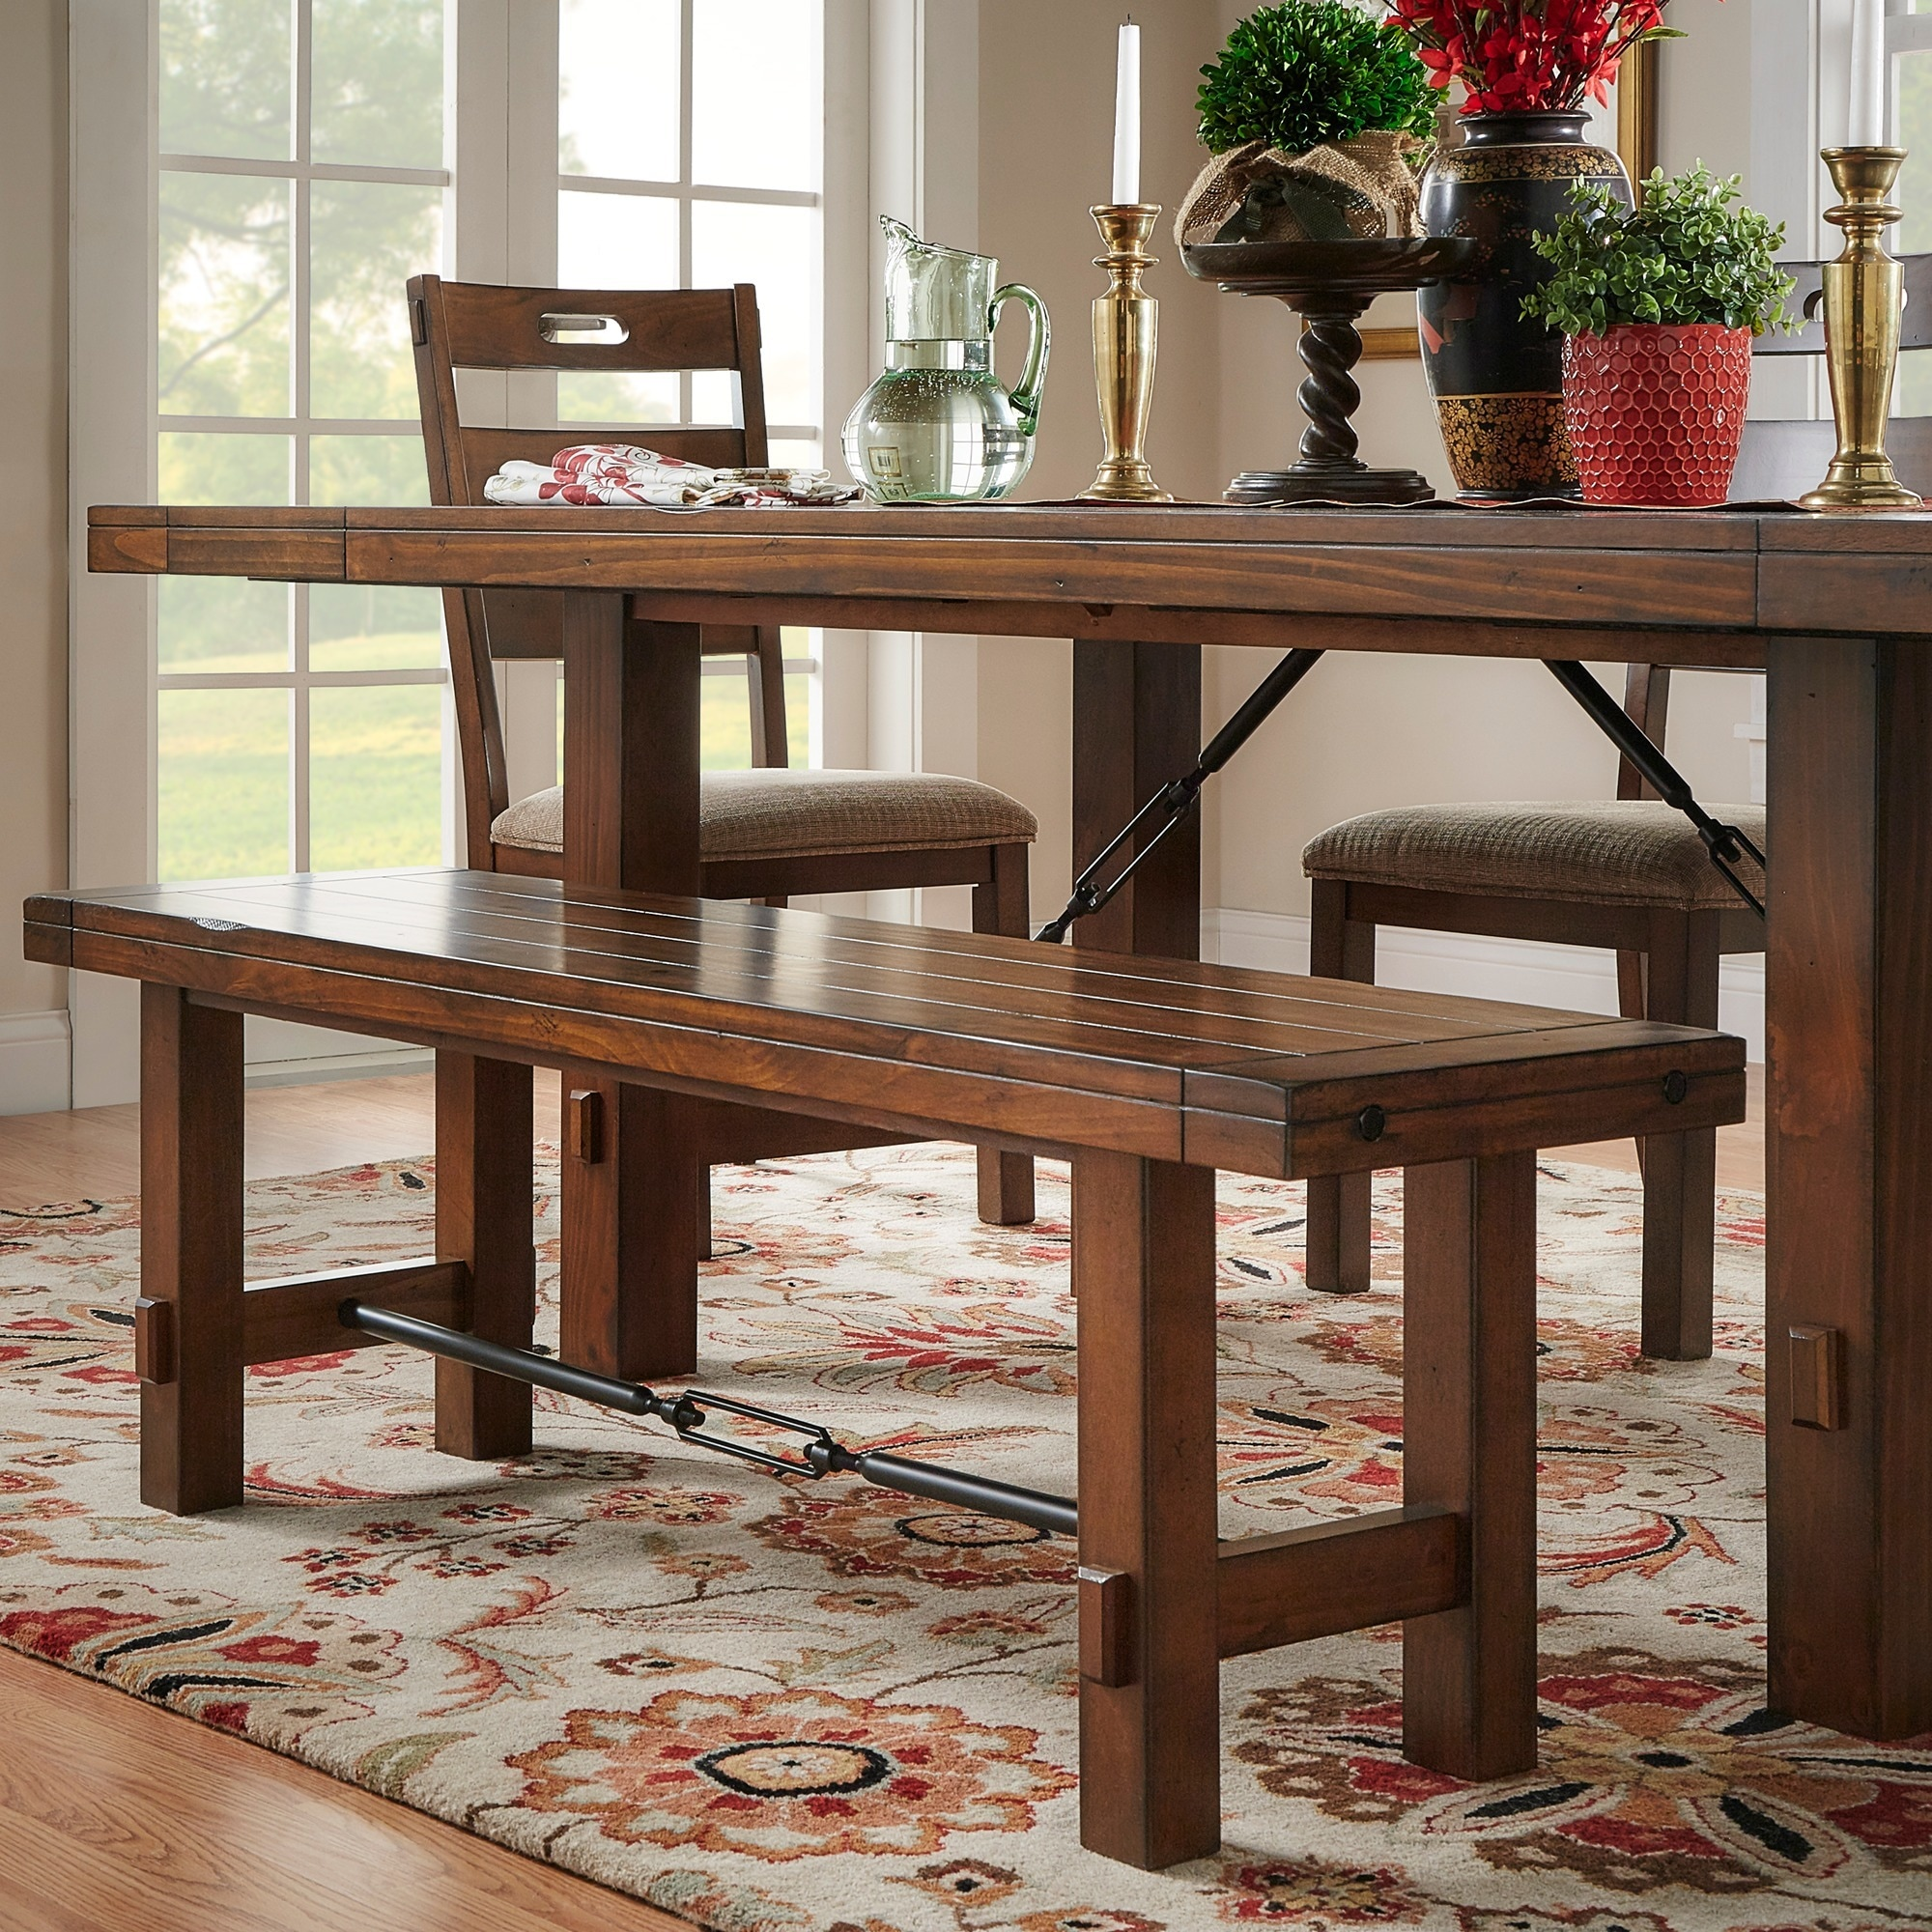 Beau Shop Swindon Rustic Oak Turnbuckle Dining Bench By INSPIRE Q Classic   Free  Shipping Today   Overstock.com   6780311